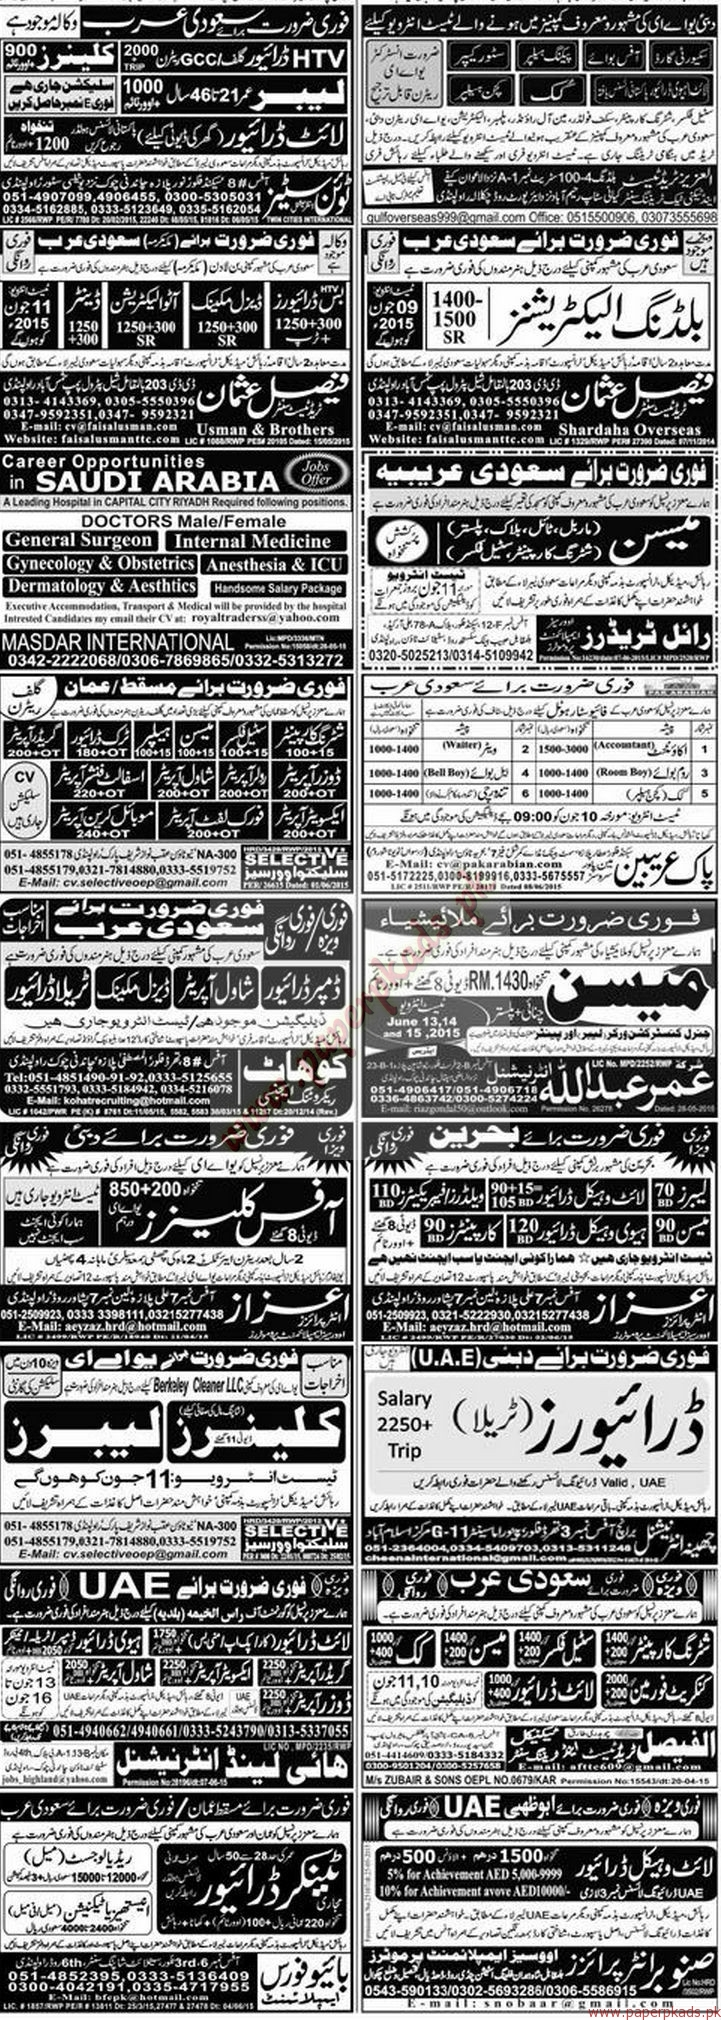 Accountant, Room boy, General Surgeon, Internal Medicine, Gynecologists, Nurses, Drivers, Office Boy, Store keeper and Other Jobs - Express Jobs ads 09 June 2015